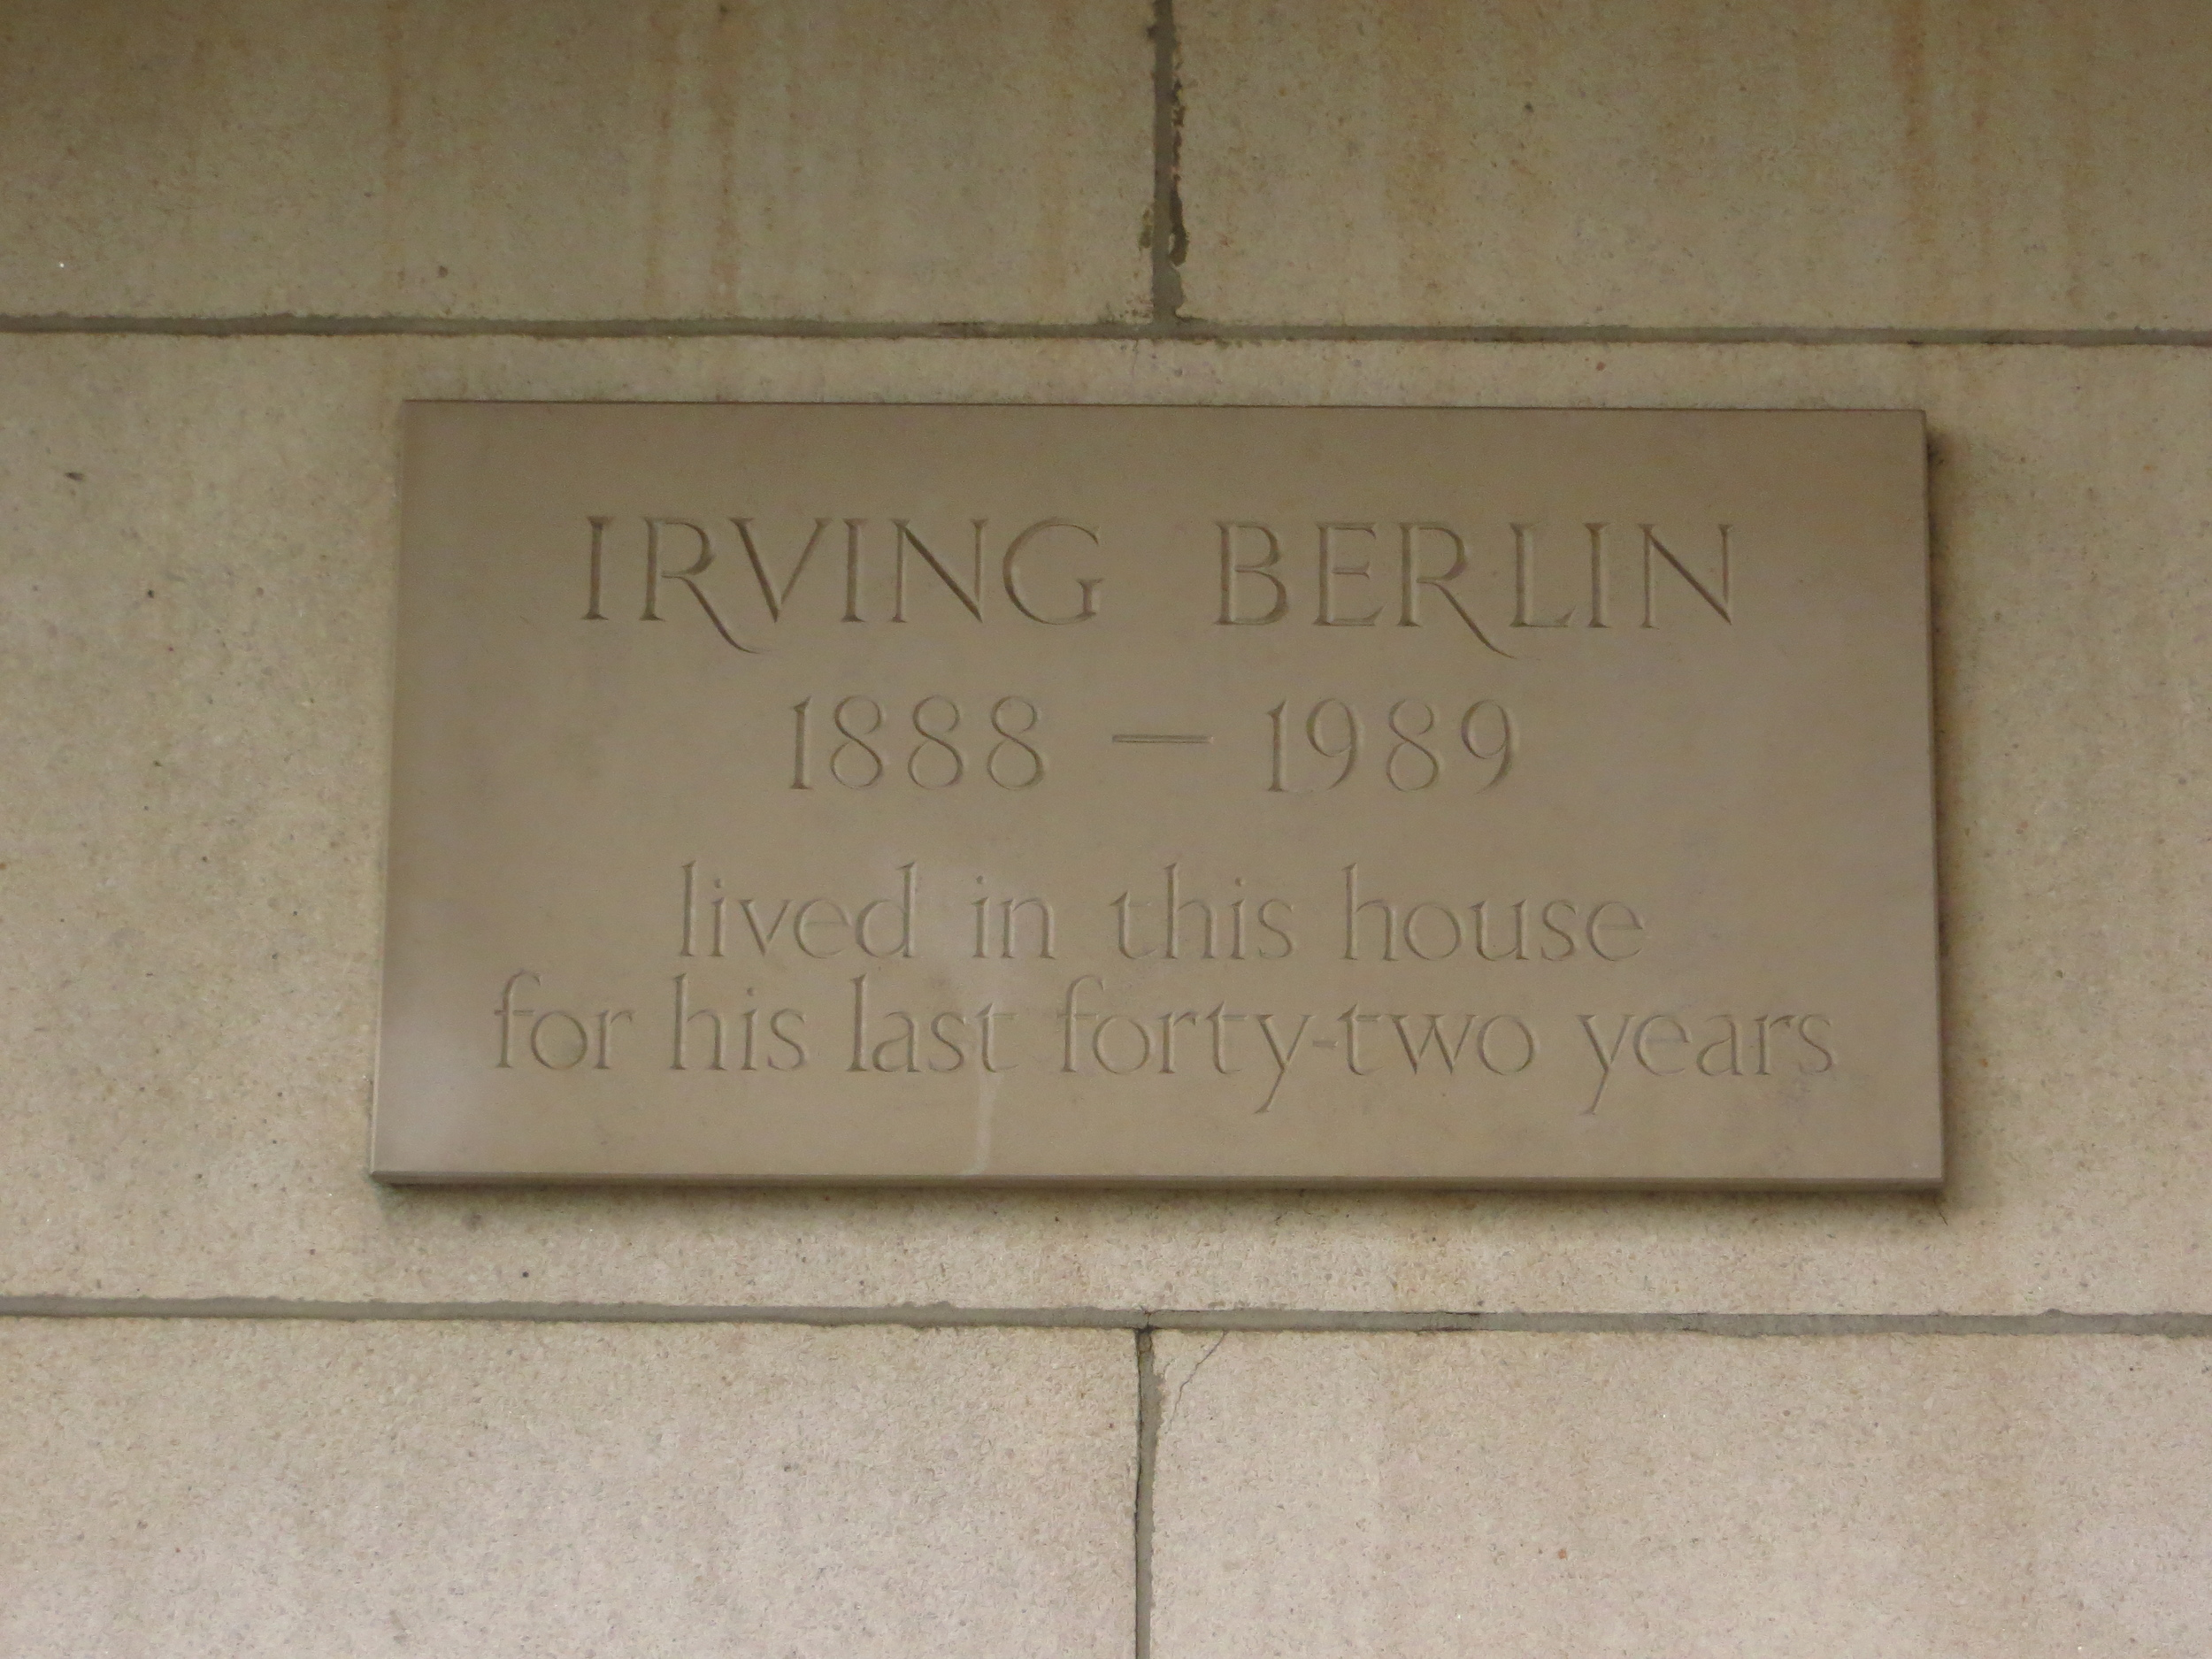 """It was the home of Irving Berlin (who wrote """"White Christmas"""")"""